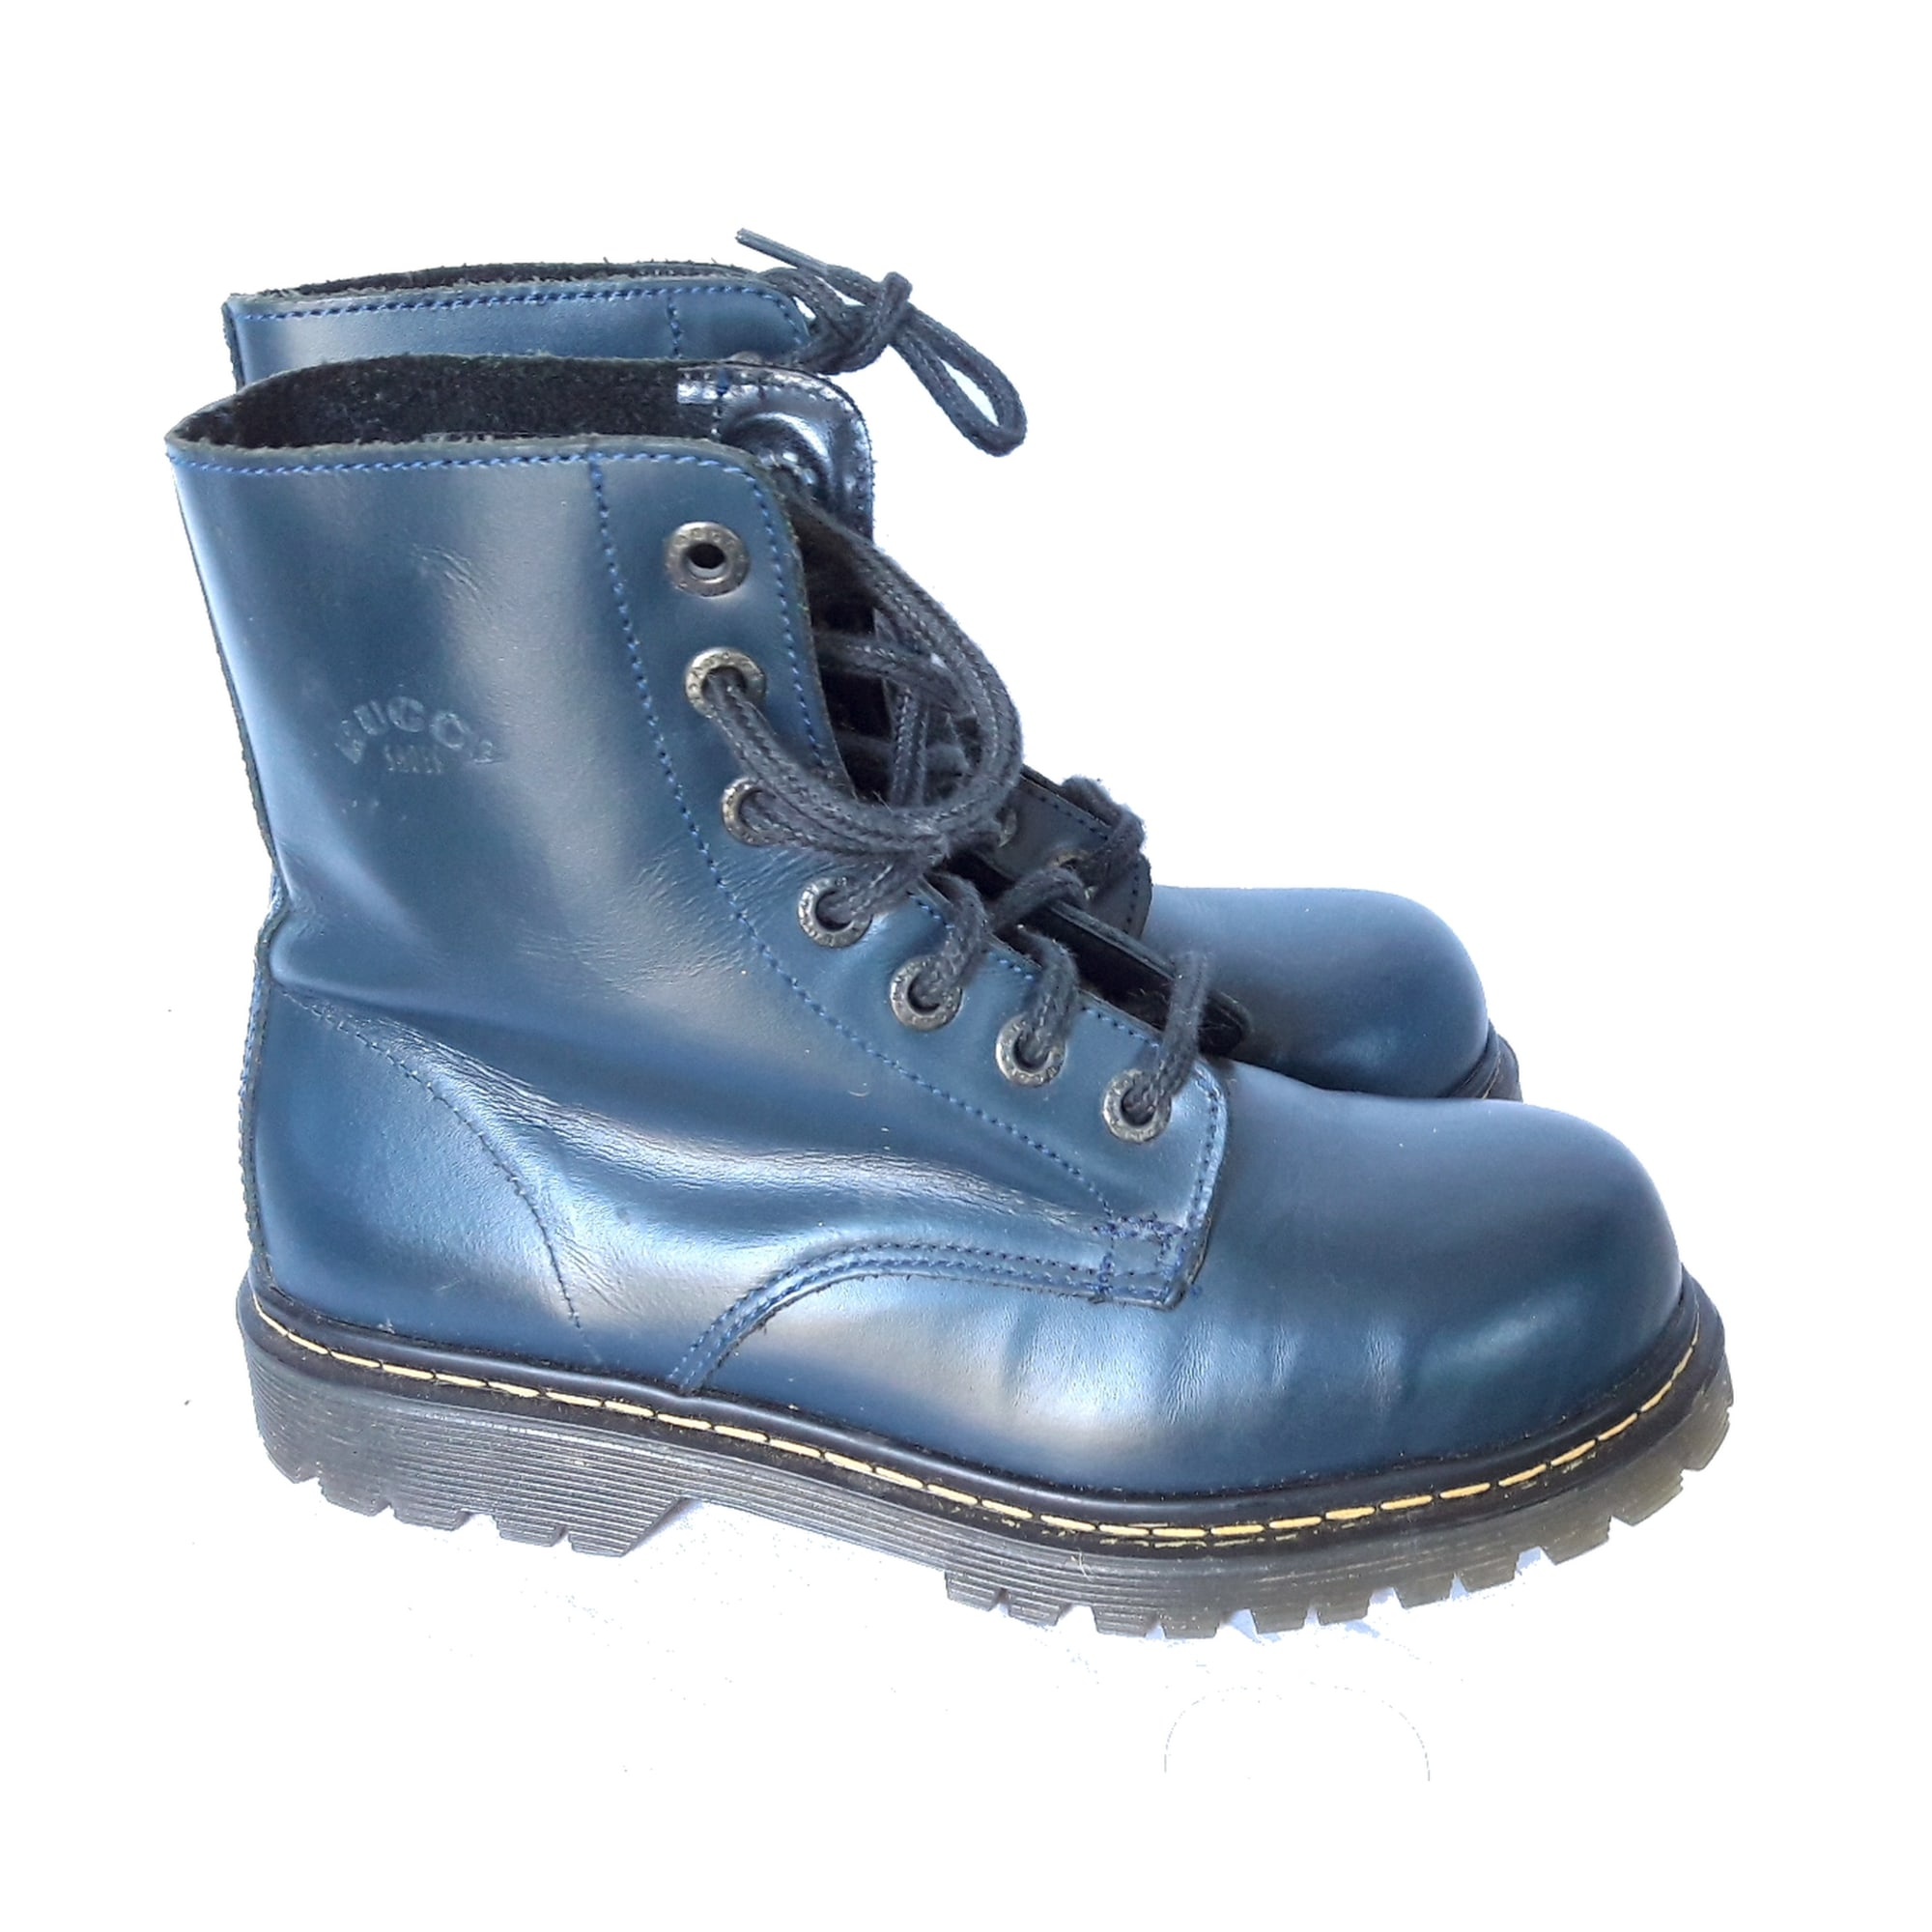 24af8c027a4e7e Bottines & low boots plates BUGGY 37 bleu vendu par Cathy dressing ...